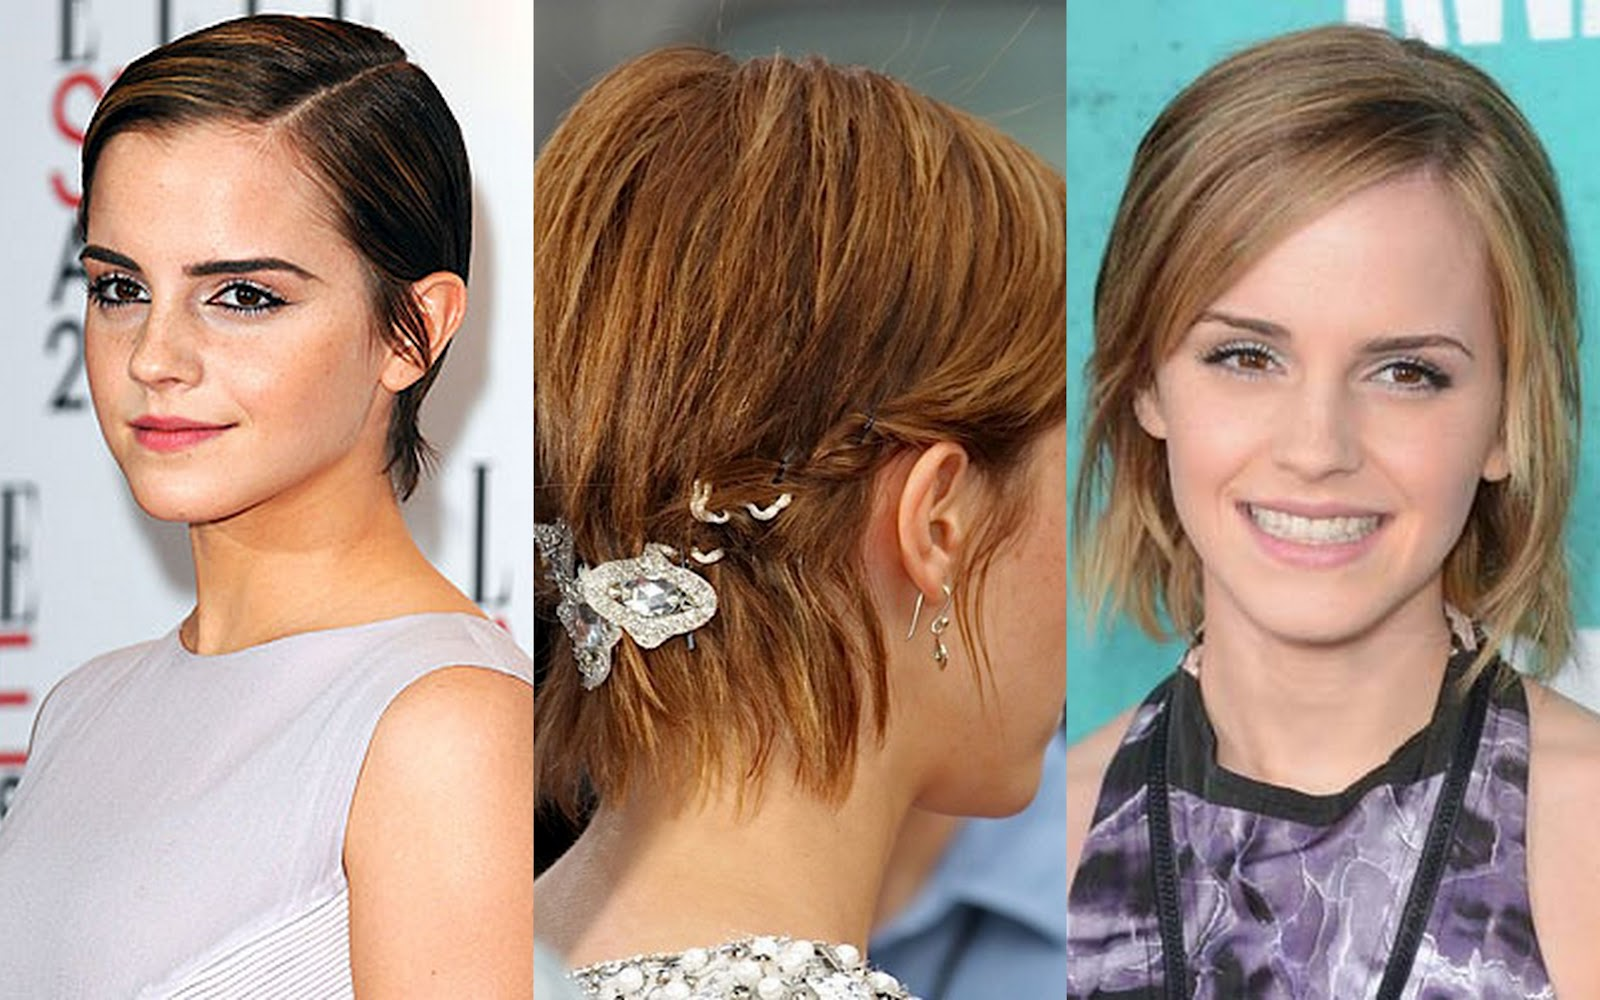 Hairstyles While Growing Out Short Hair Short Hairstyles